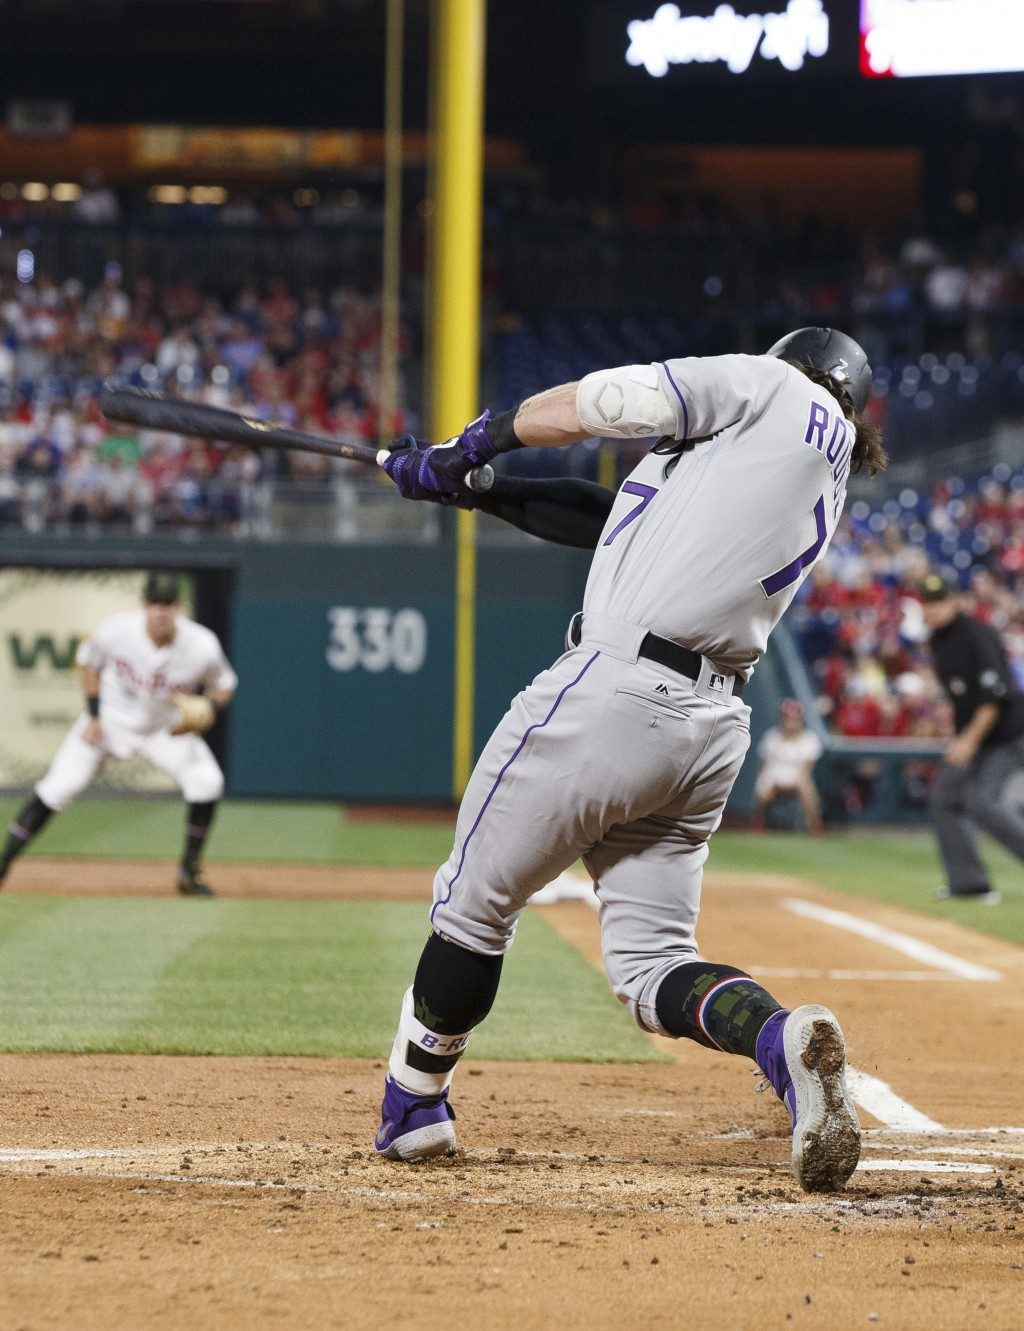 Colorado Rockies' Brendan Rodgers hits a ground ball that drove in a run during the second inning of the team's baseball game against the Philadelphia